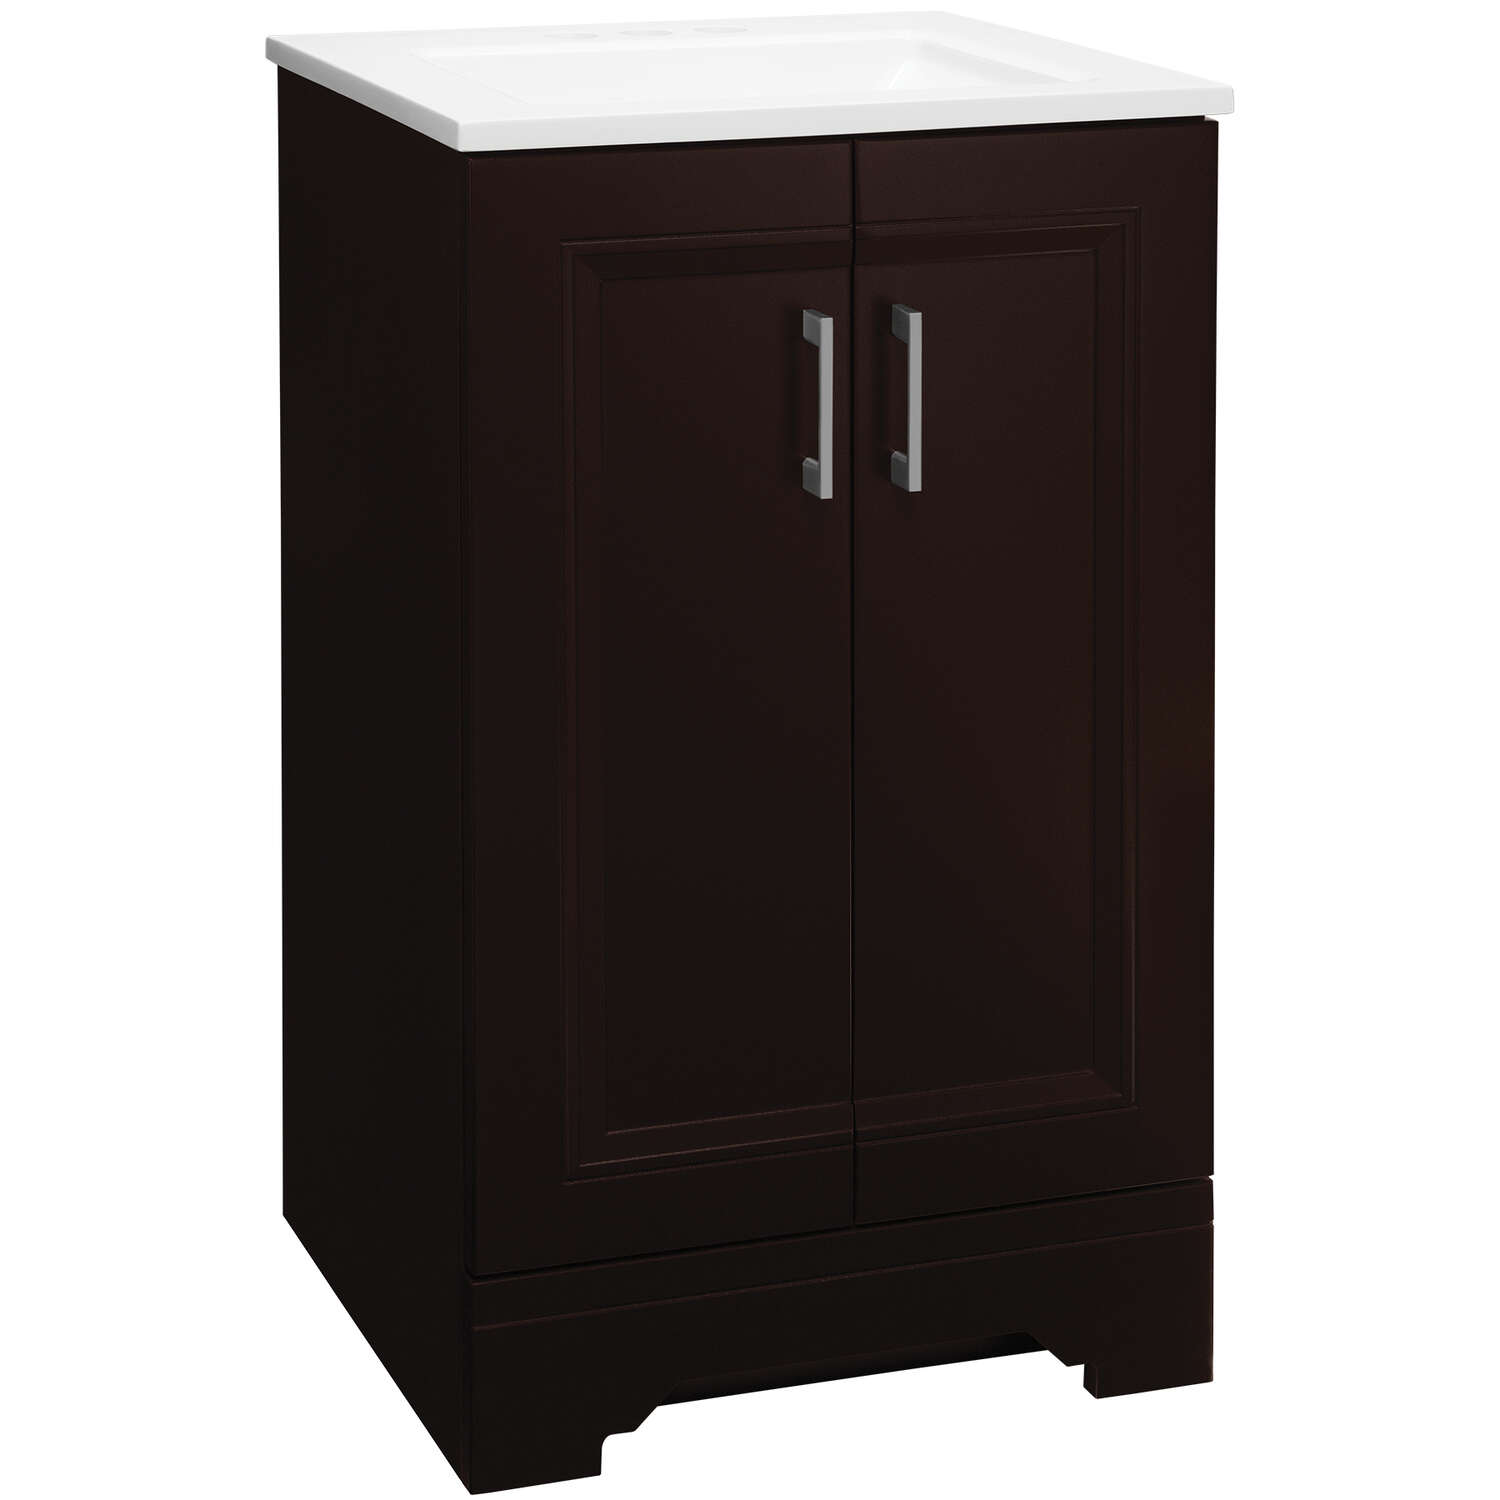 Continental Cabinets  Single  Dark  Espresso  Vanity Combo  18 in. W x 16 in. D x 31-3/4 in. H